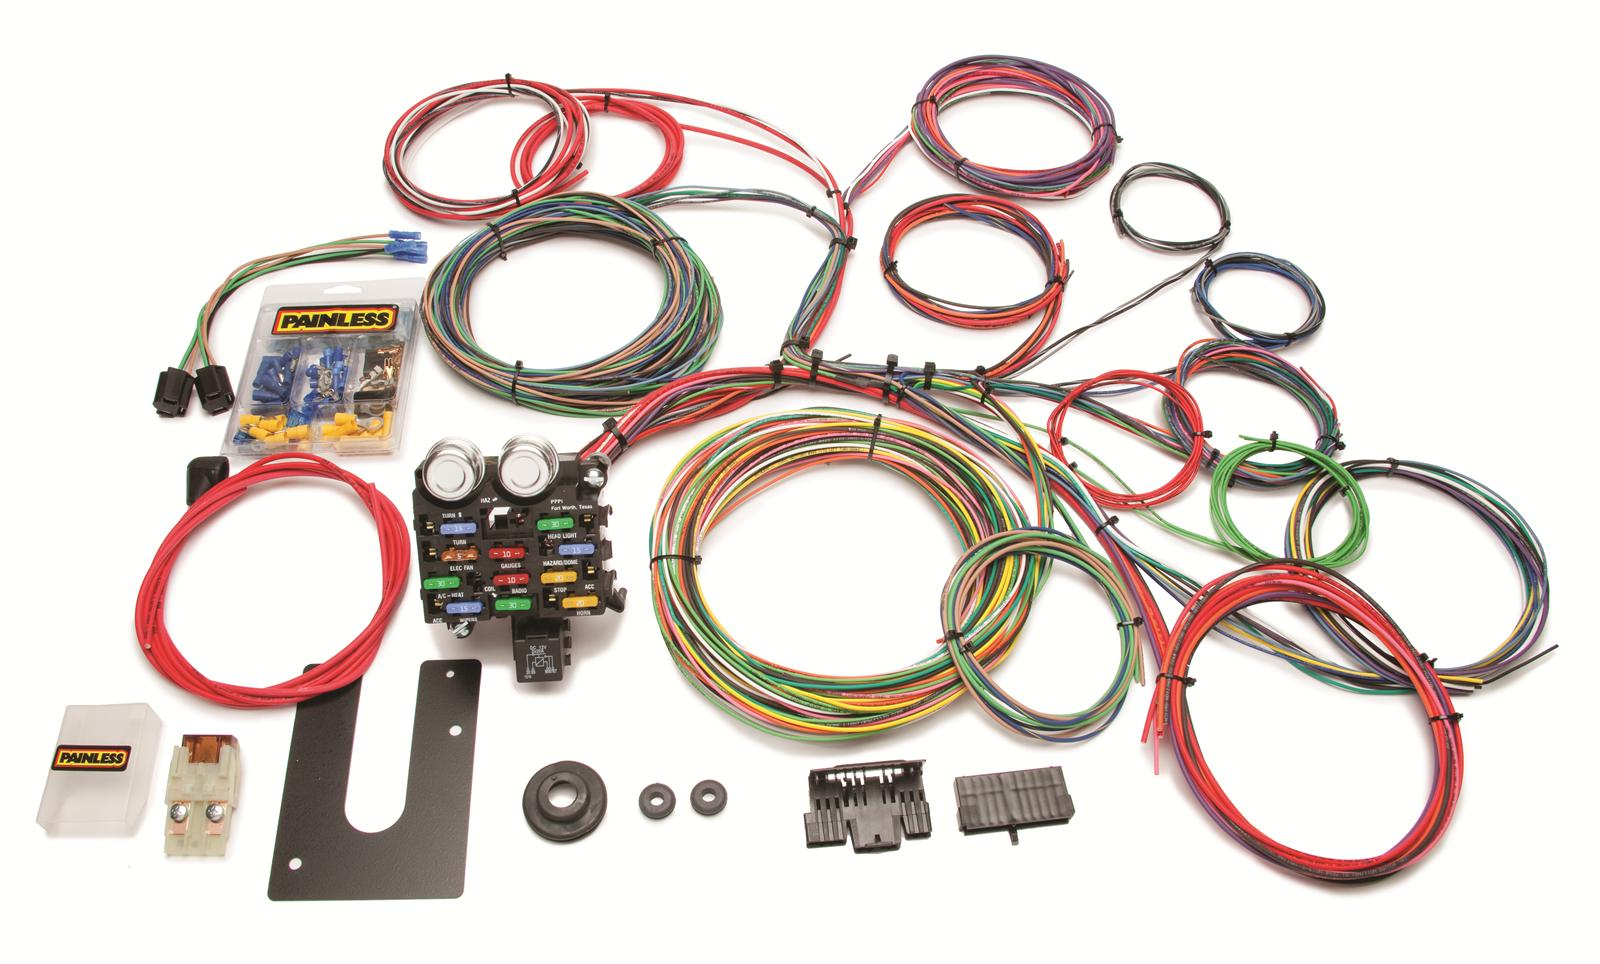 painless performance 21 circuit universal harnesses 10102 painless performance 21 circuit universal harnesses 10102 shipping on orders over 99 at summit racing